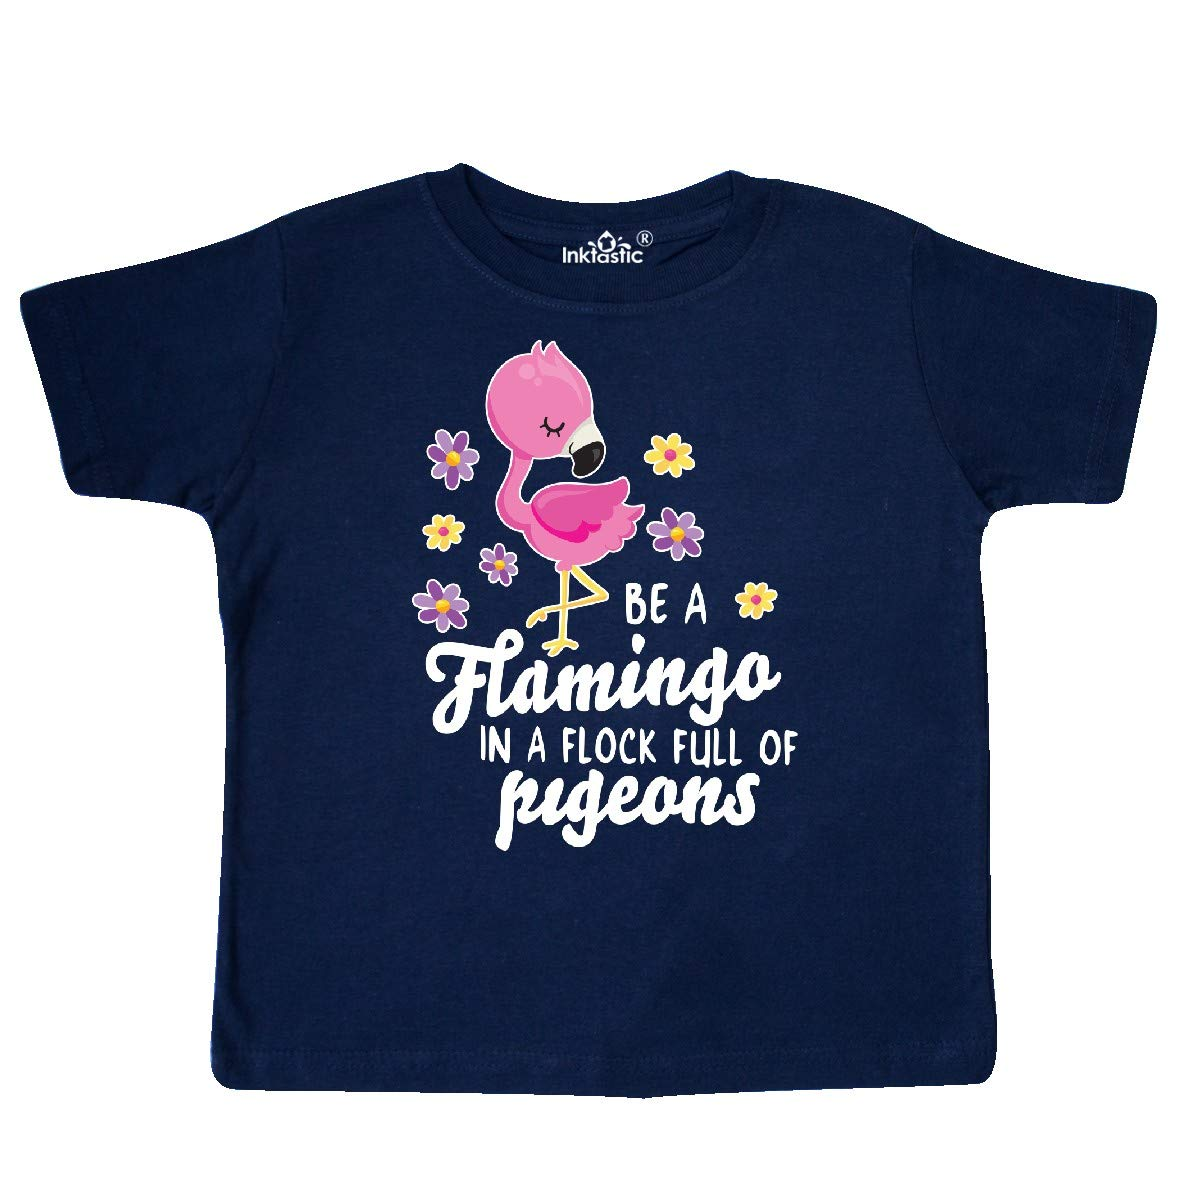 inktastic Be a Flamingo in a Flock of Pigeons with Flowers Toddler T-Shirt